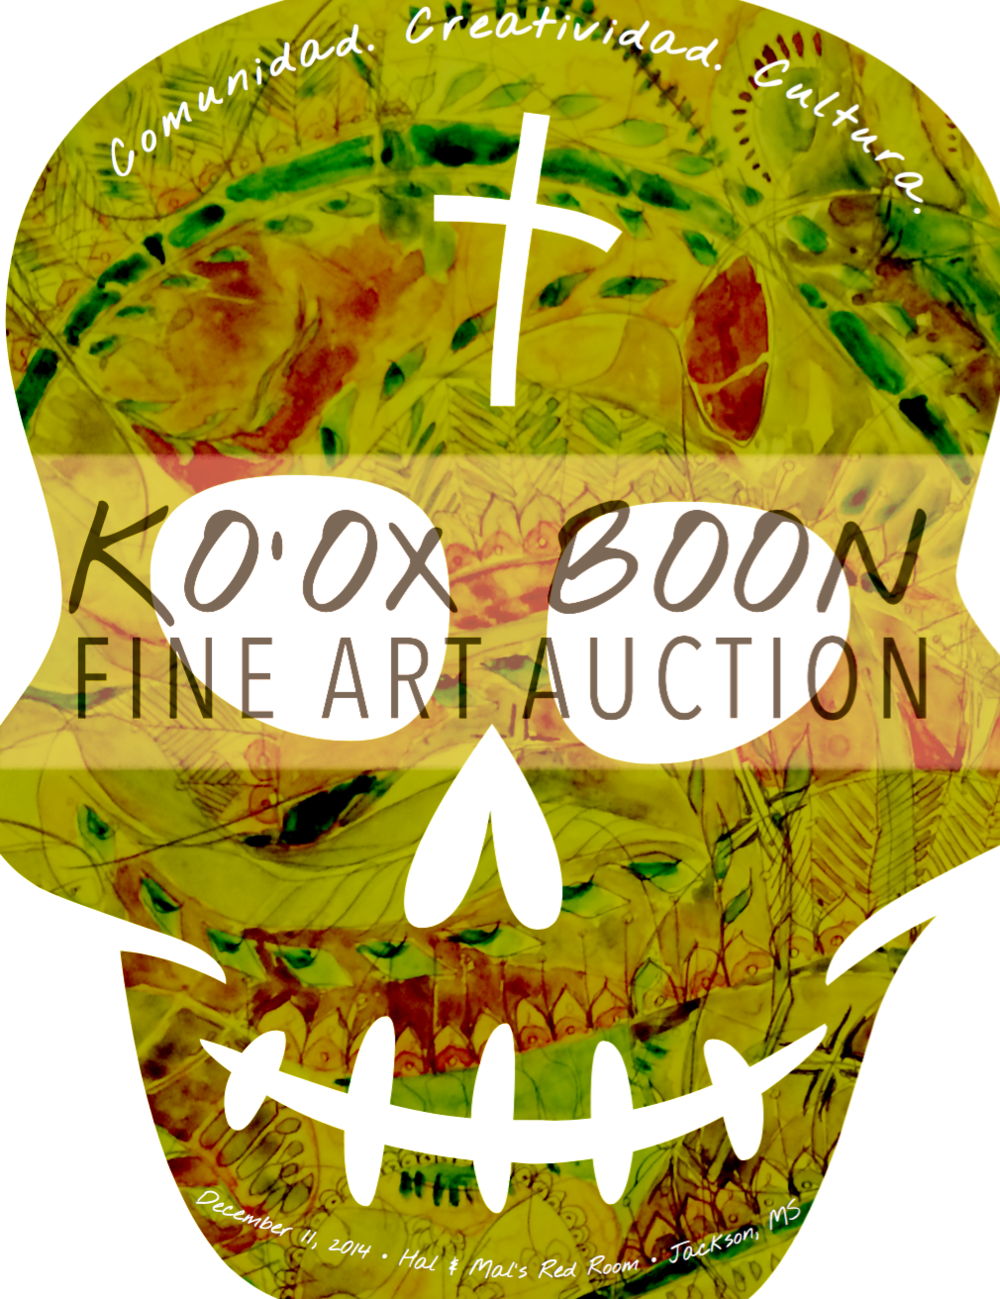 First annual Ko'ox Boon art auction catalog, Created by Kristen Lucas, Jackson, Mississippi, December 2014